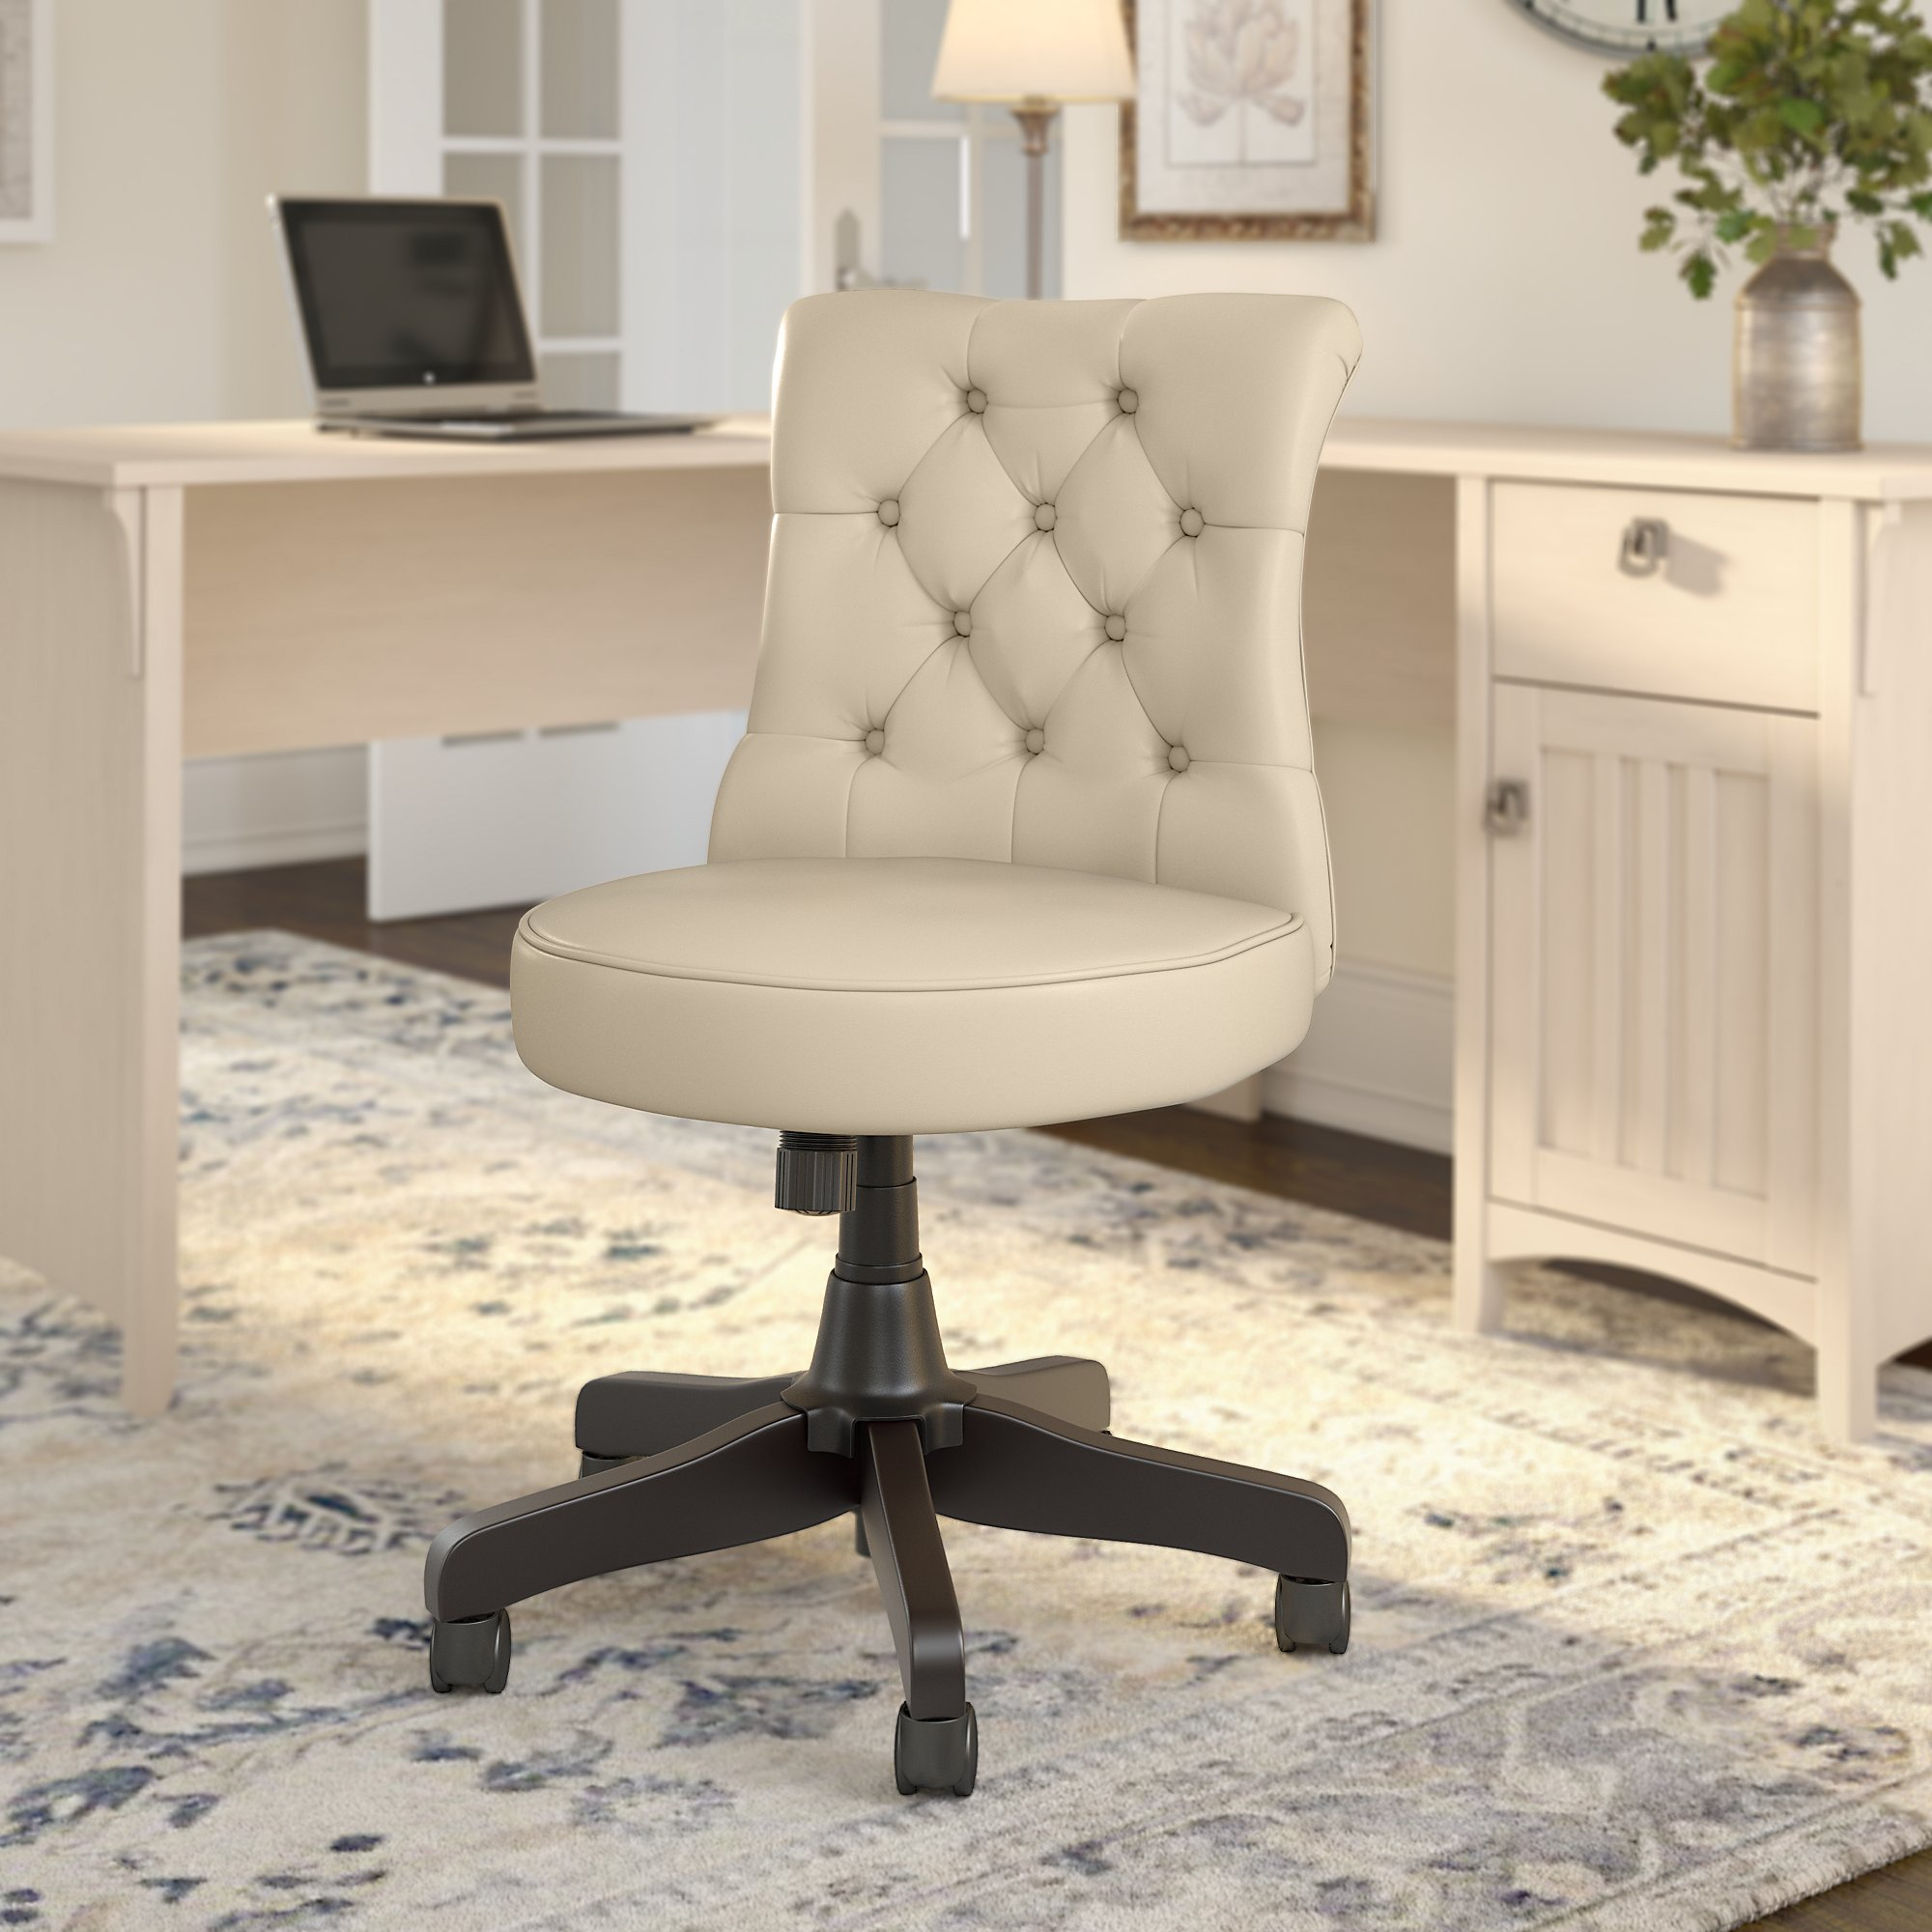 hight resolution of bush business furniture arden lane chair in antique white leather